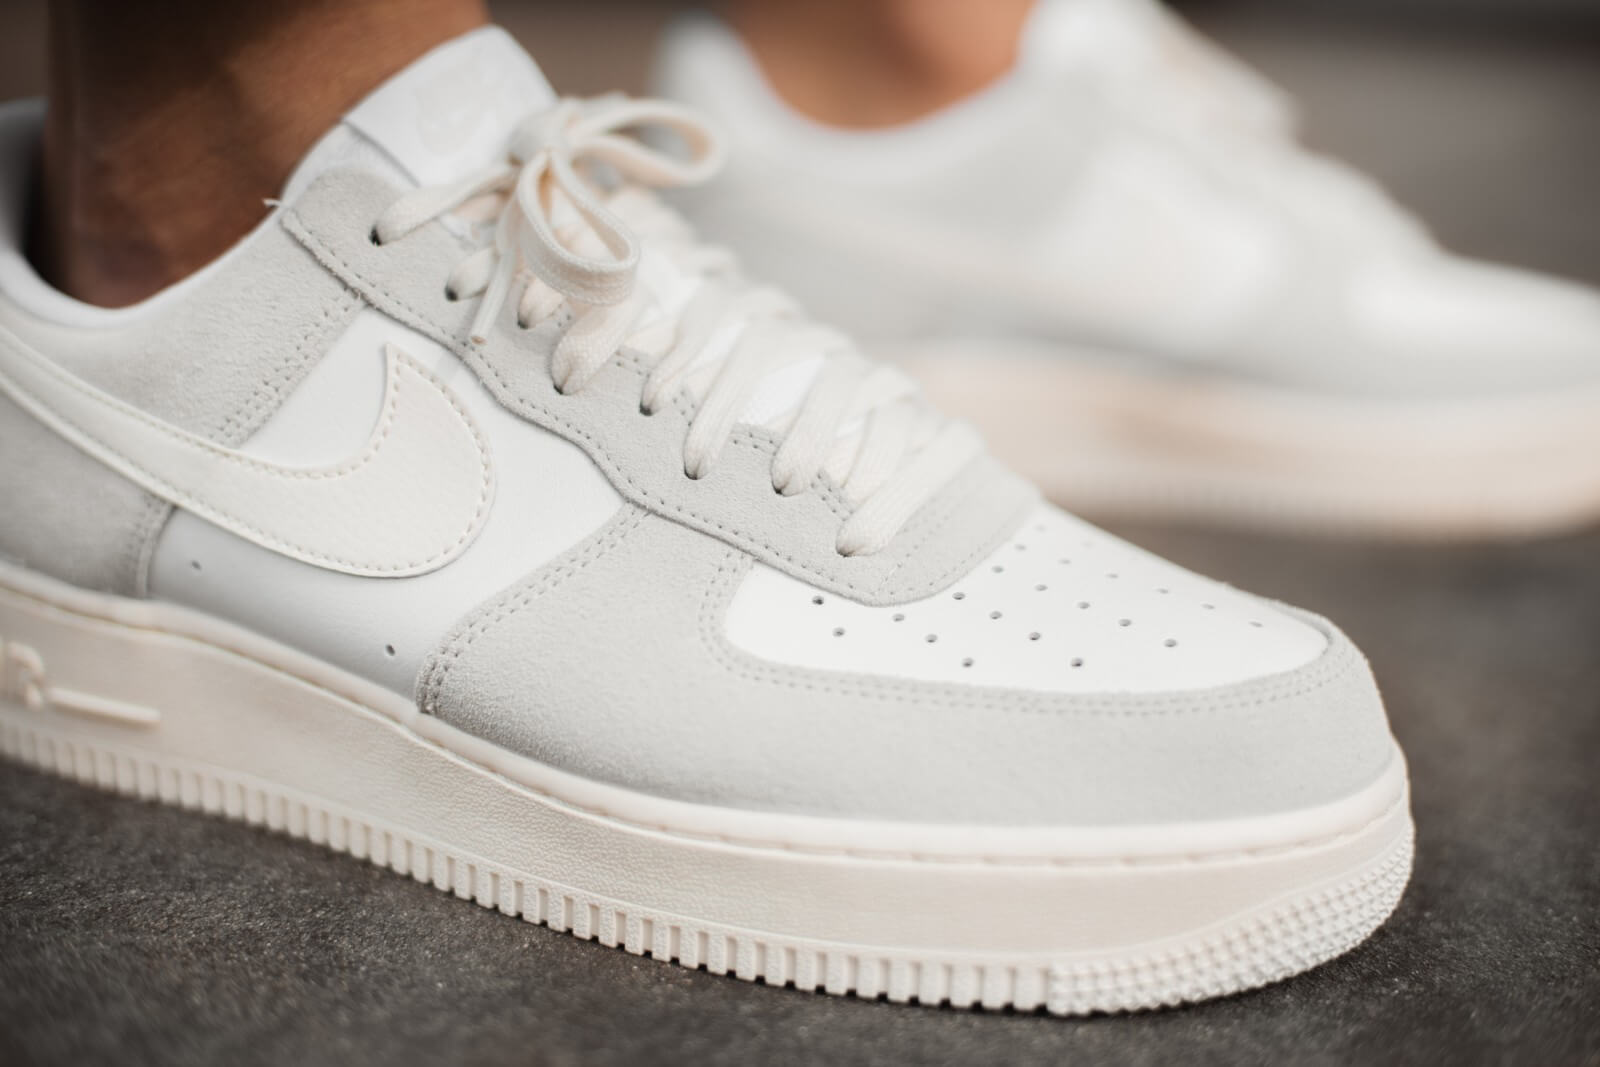 Nike Air Force 1 LV8 WhiteSail Platinum Tint CW7584 100